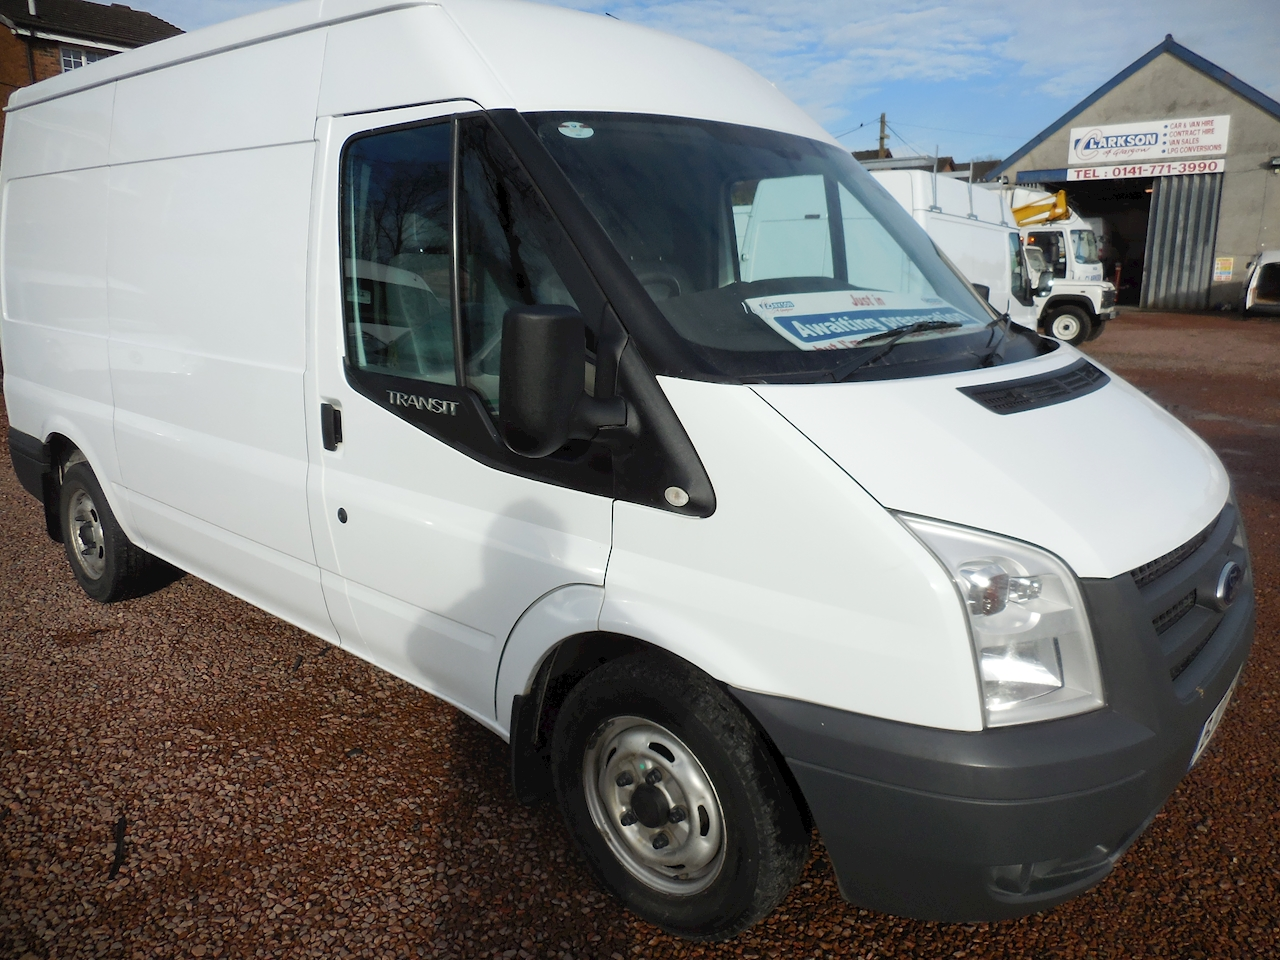 Ford Transit 280 Medium Wheel Base Mwb 2.2 Panel Van Manual Diesel